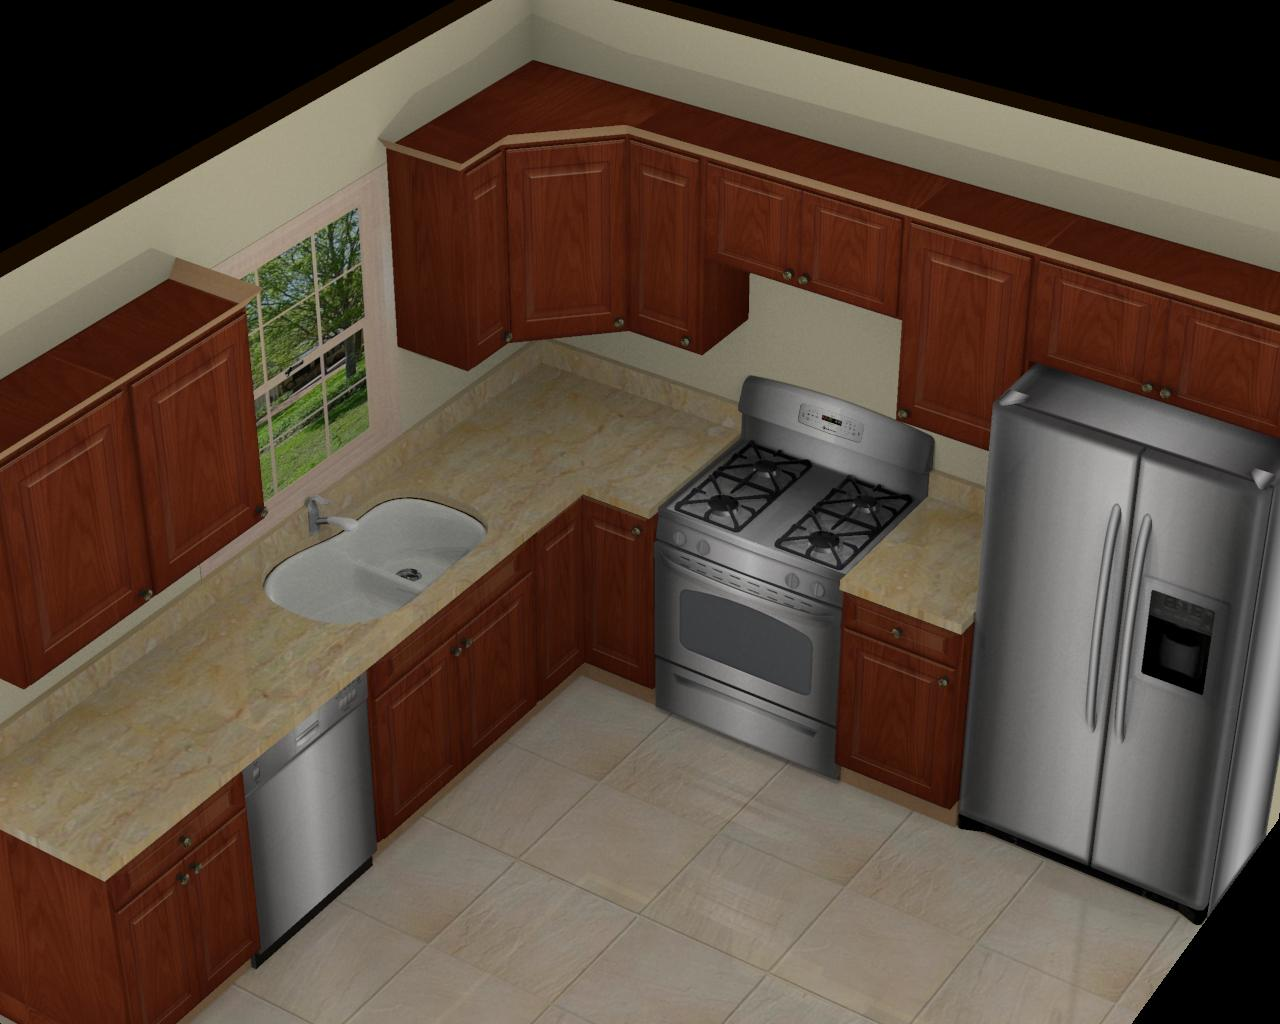 Foundation dezin decor 3d kitchen model design for 10 by 8 kitchen designs